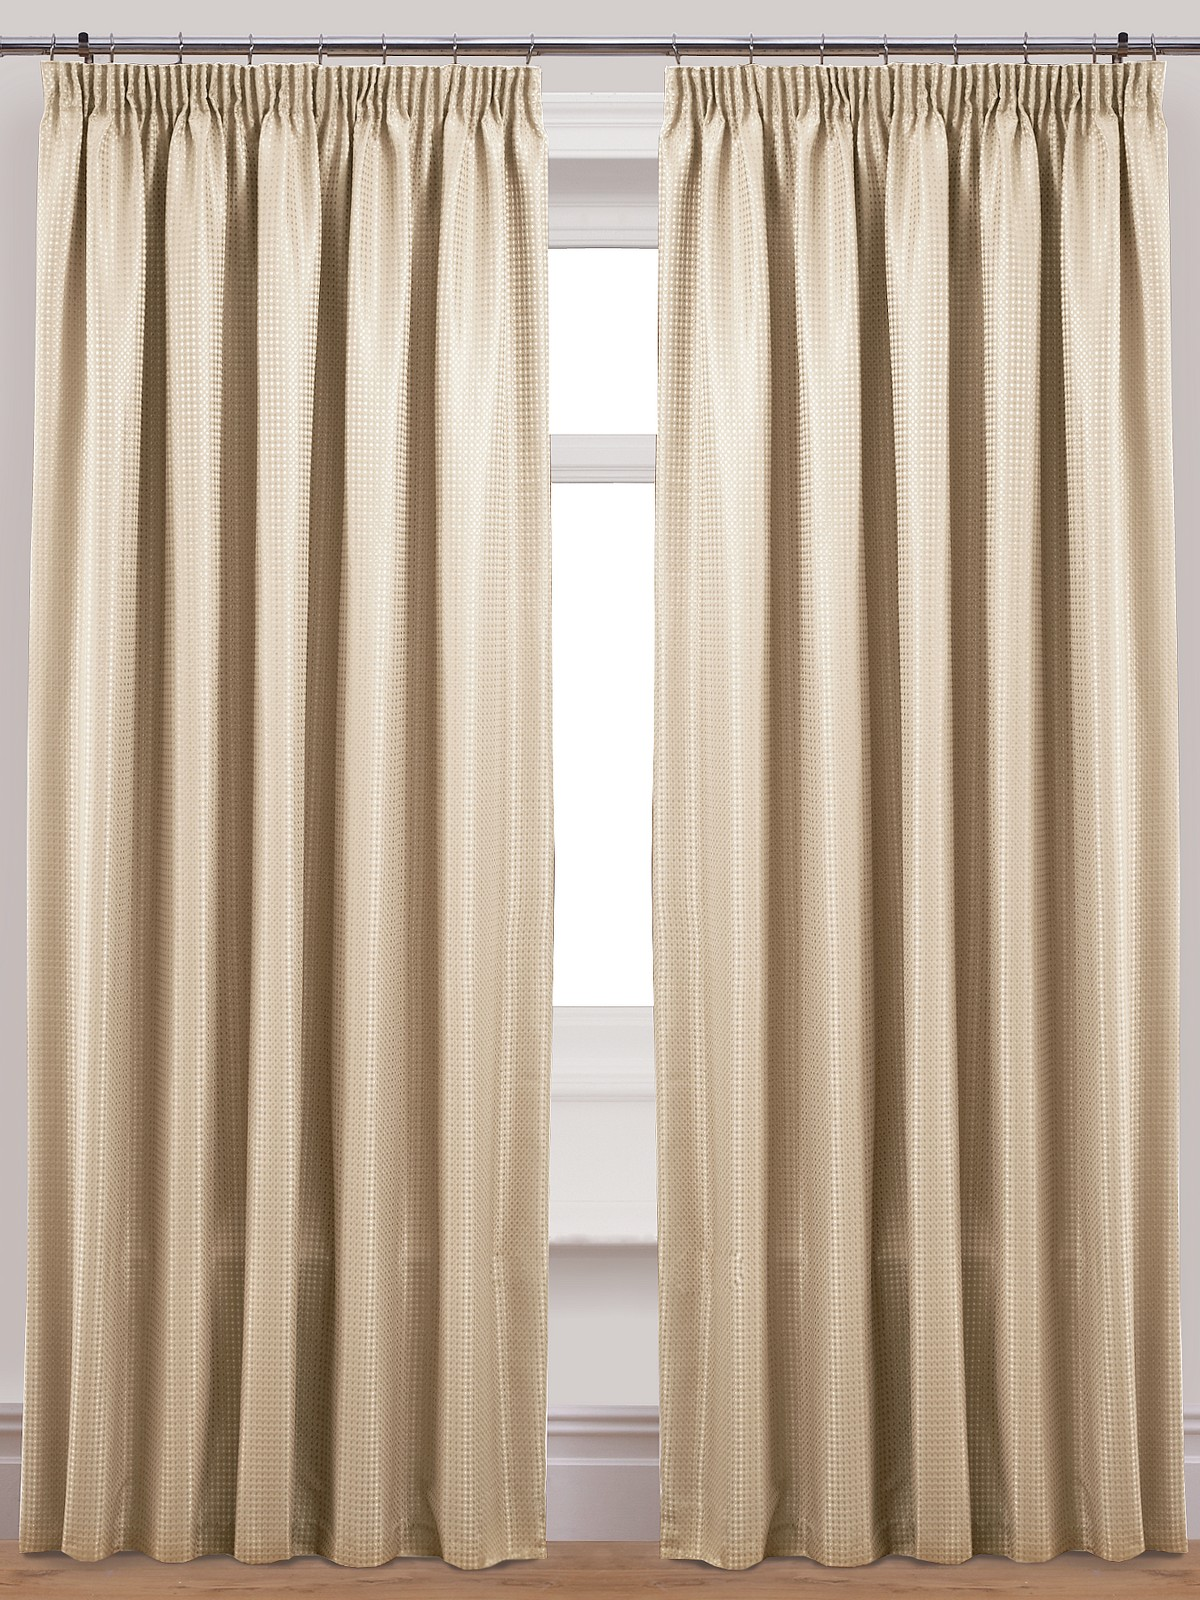 Pair Waffle Lined Curtains 3 Tape Top Pencil Pleat Plain Dye Multiple Colours